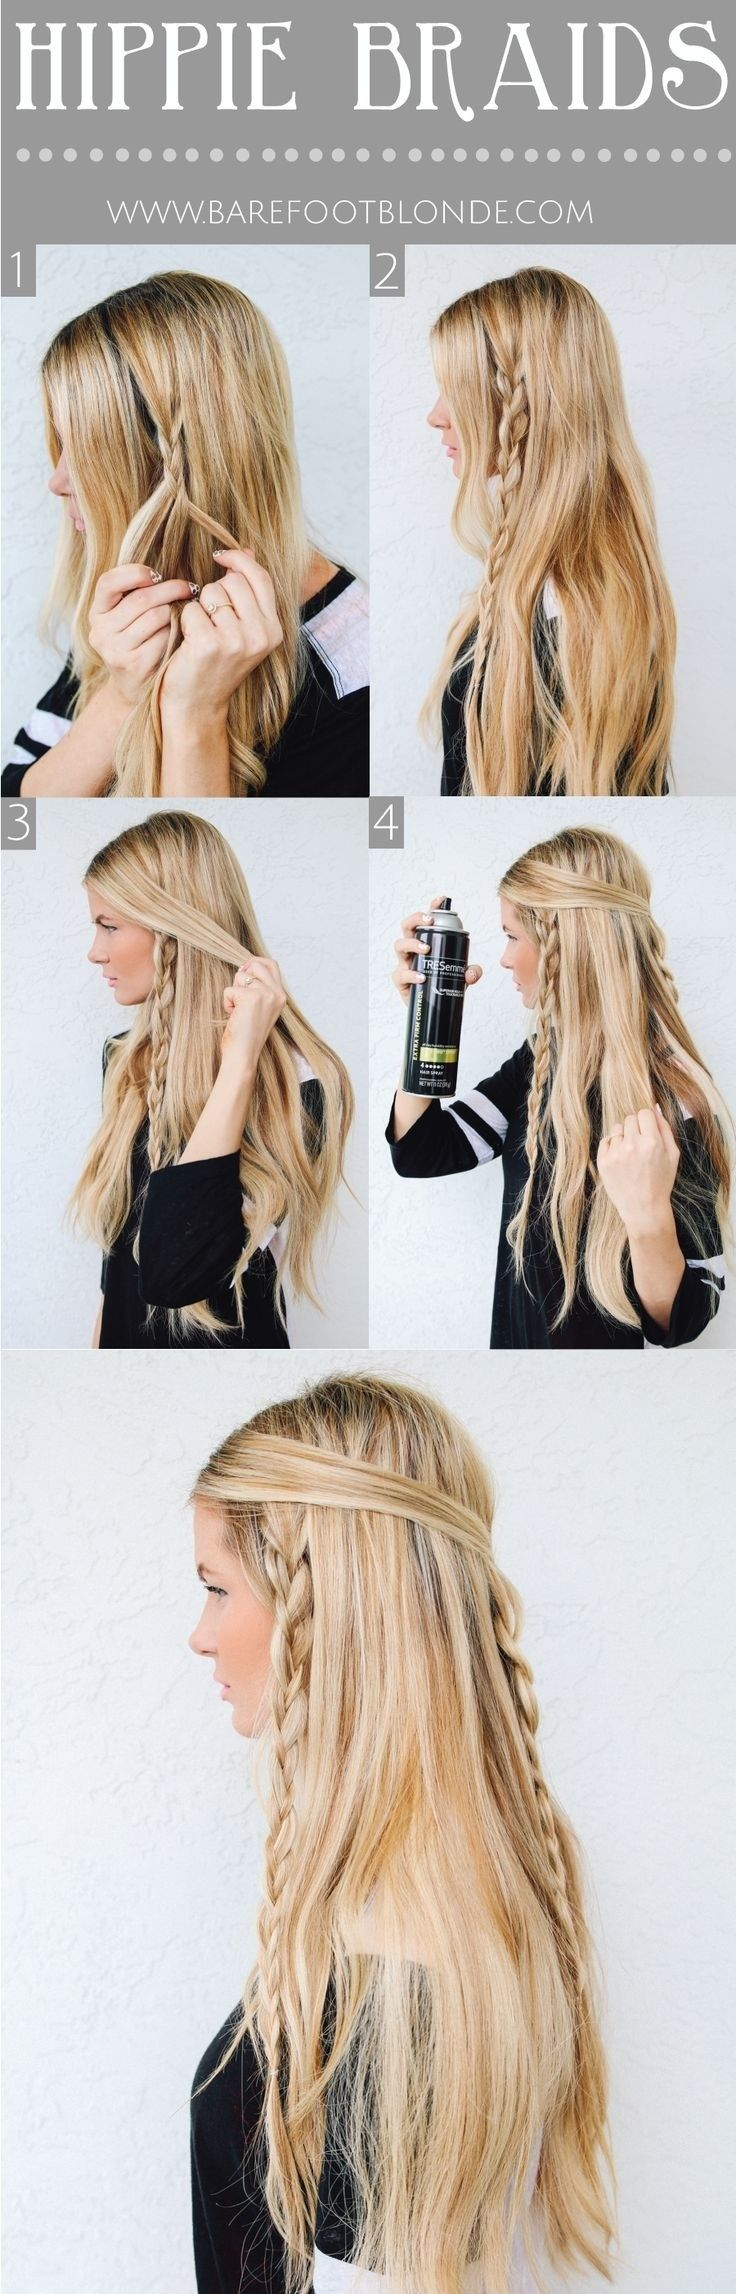 30 Cute And Easy Braid Tutorials That Are Perfect For Any Occasion Page 25 Homedable Com In 2020 Long Hair Styles Cool Hairstyles Hair Styles